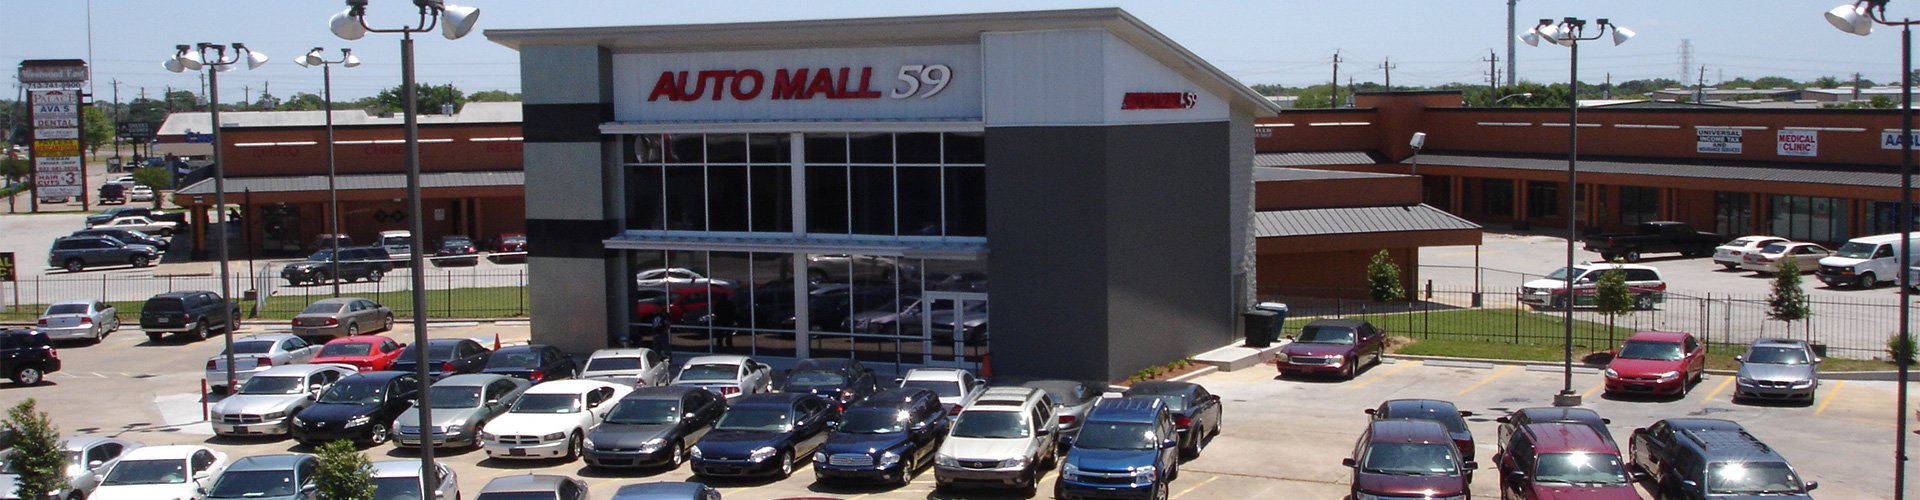 AutoMall 59 Dealership